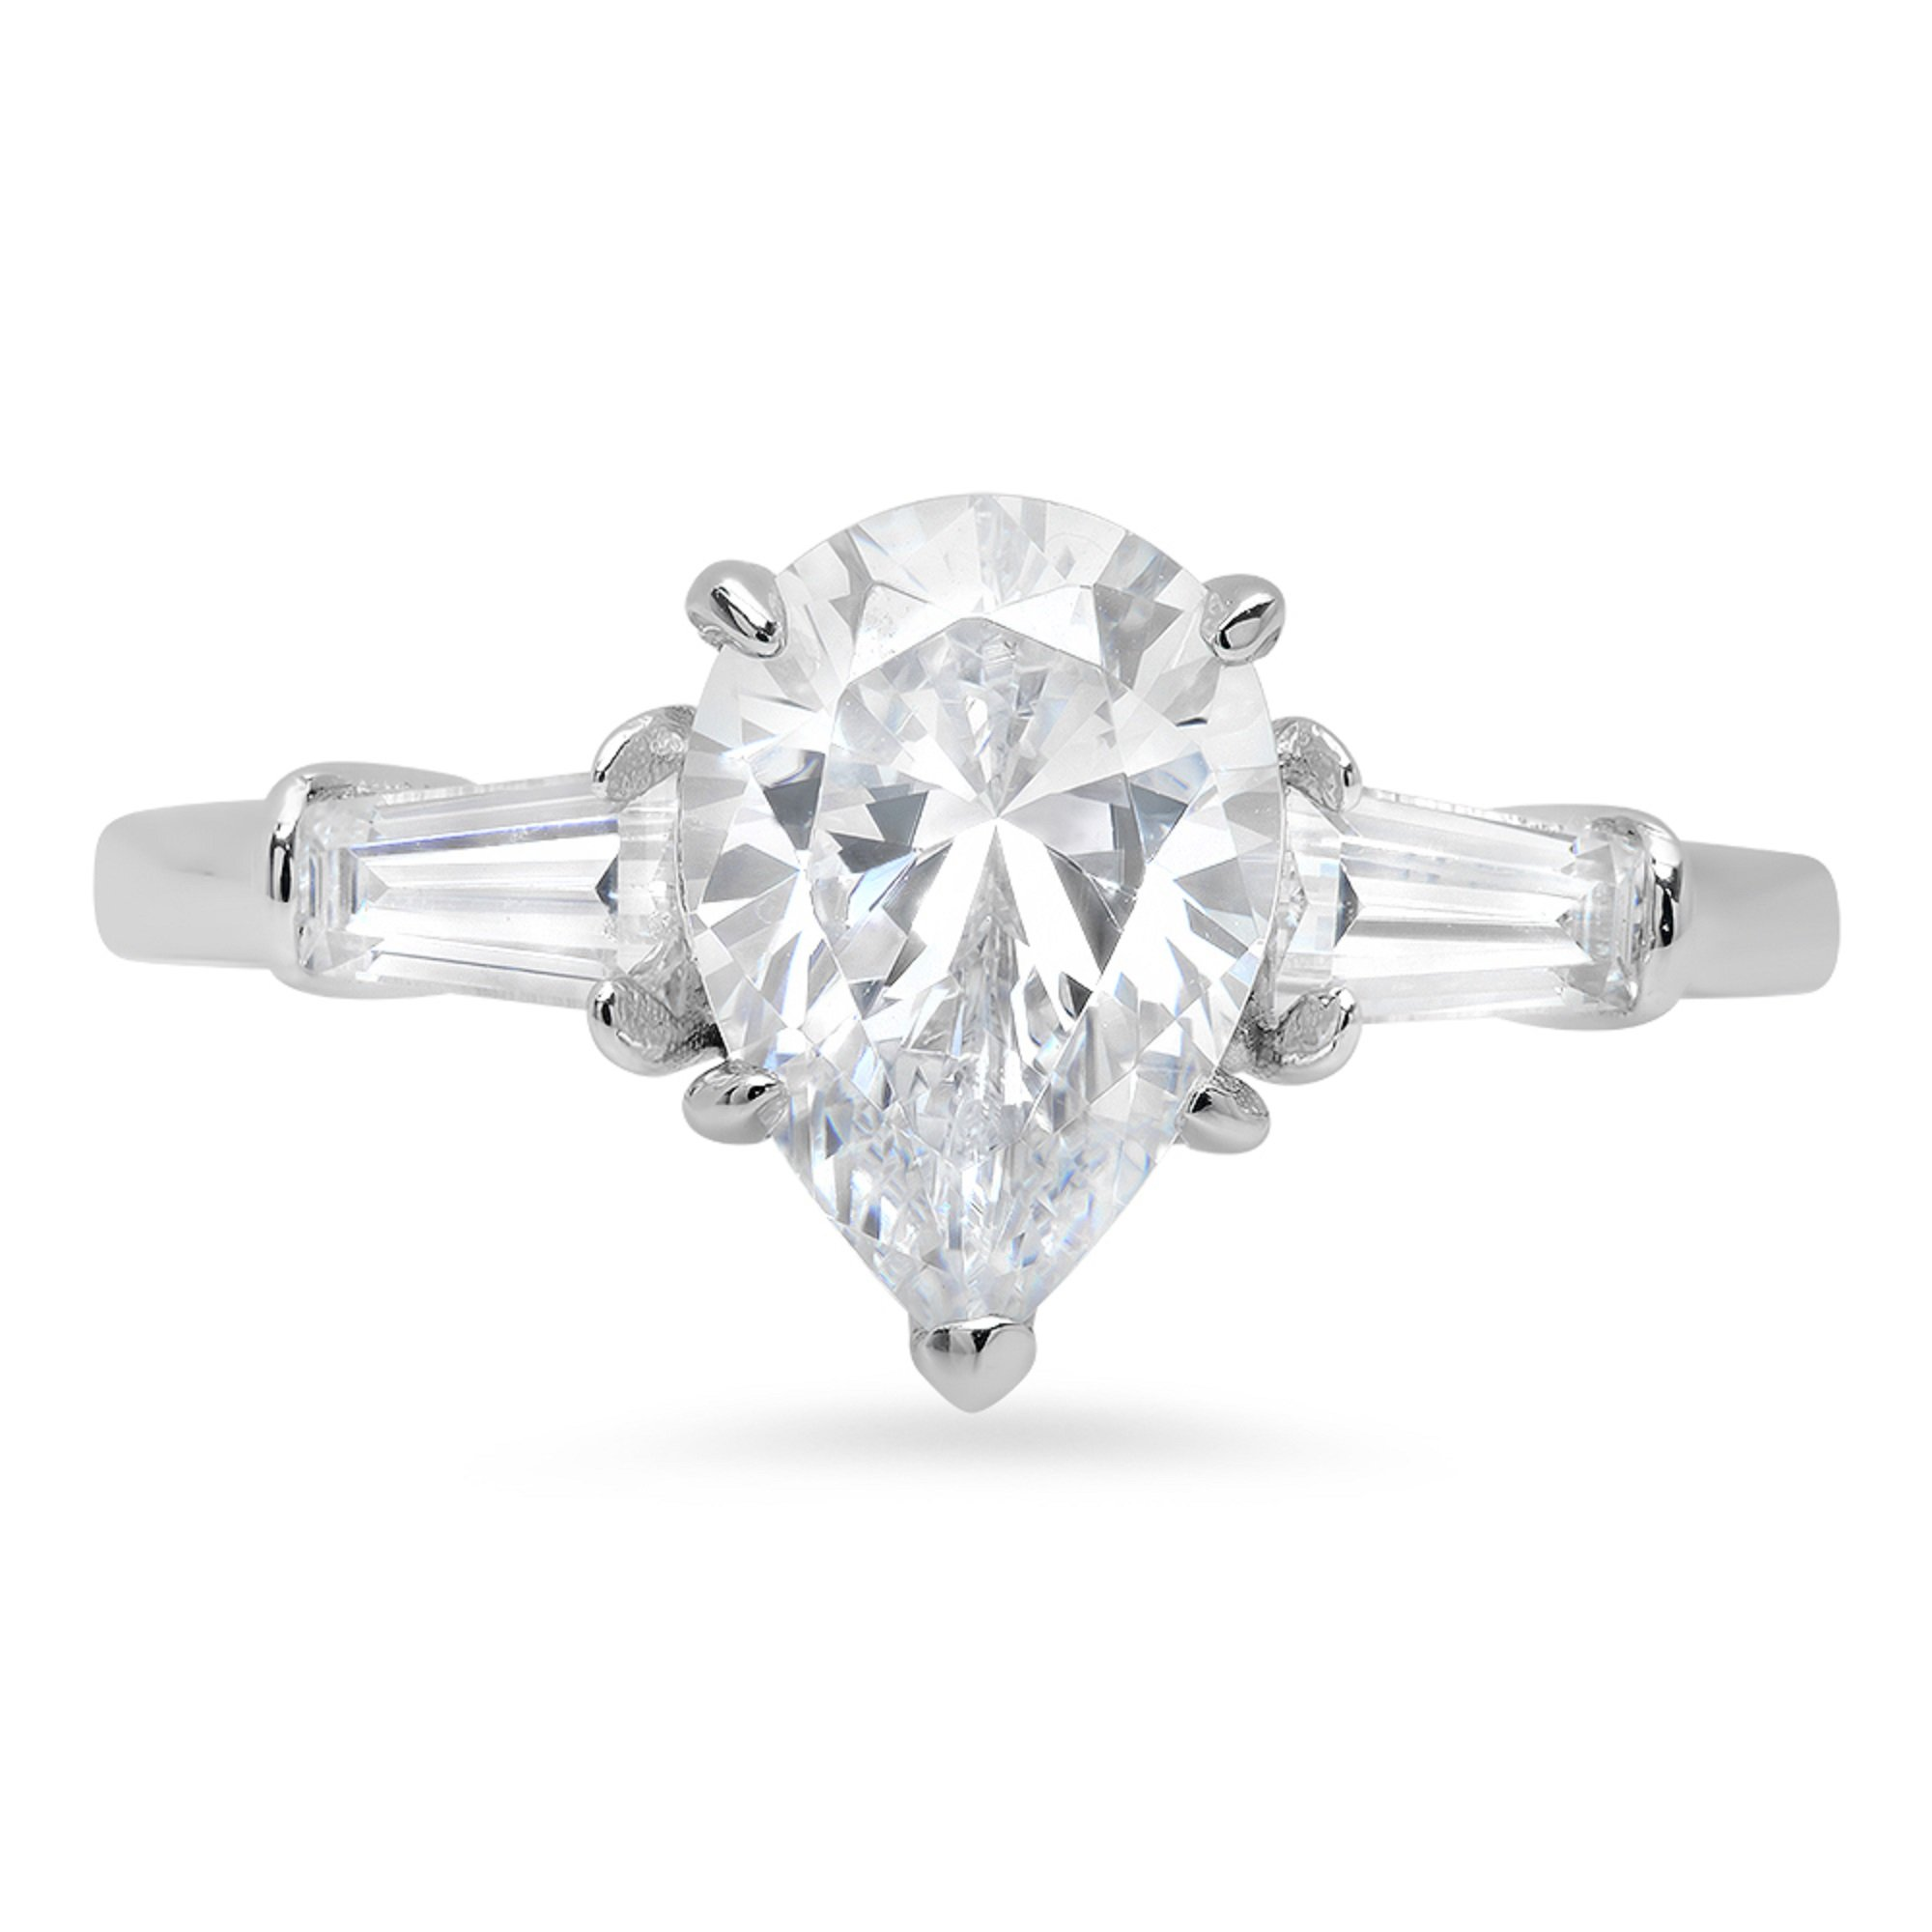 2.6ct Brilliant Pear Baguette Cut Solitaire 3-Stone Statement Ring 14k Solid White Gold, 6